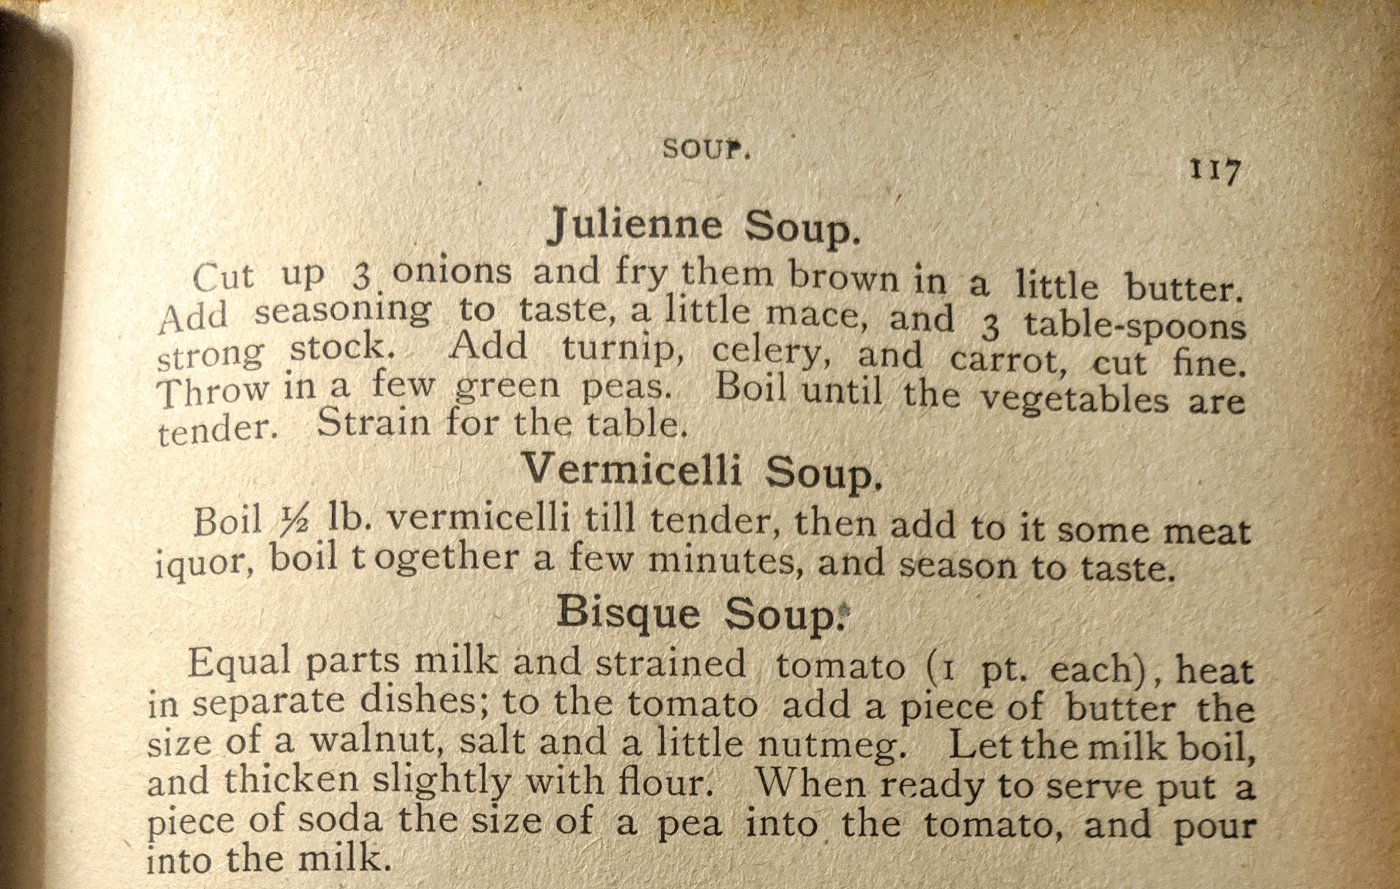 Worlds_Fair_Soup_Recipes_1893